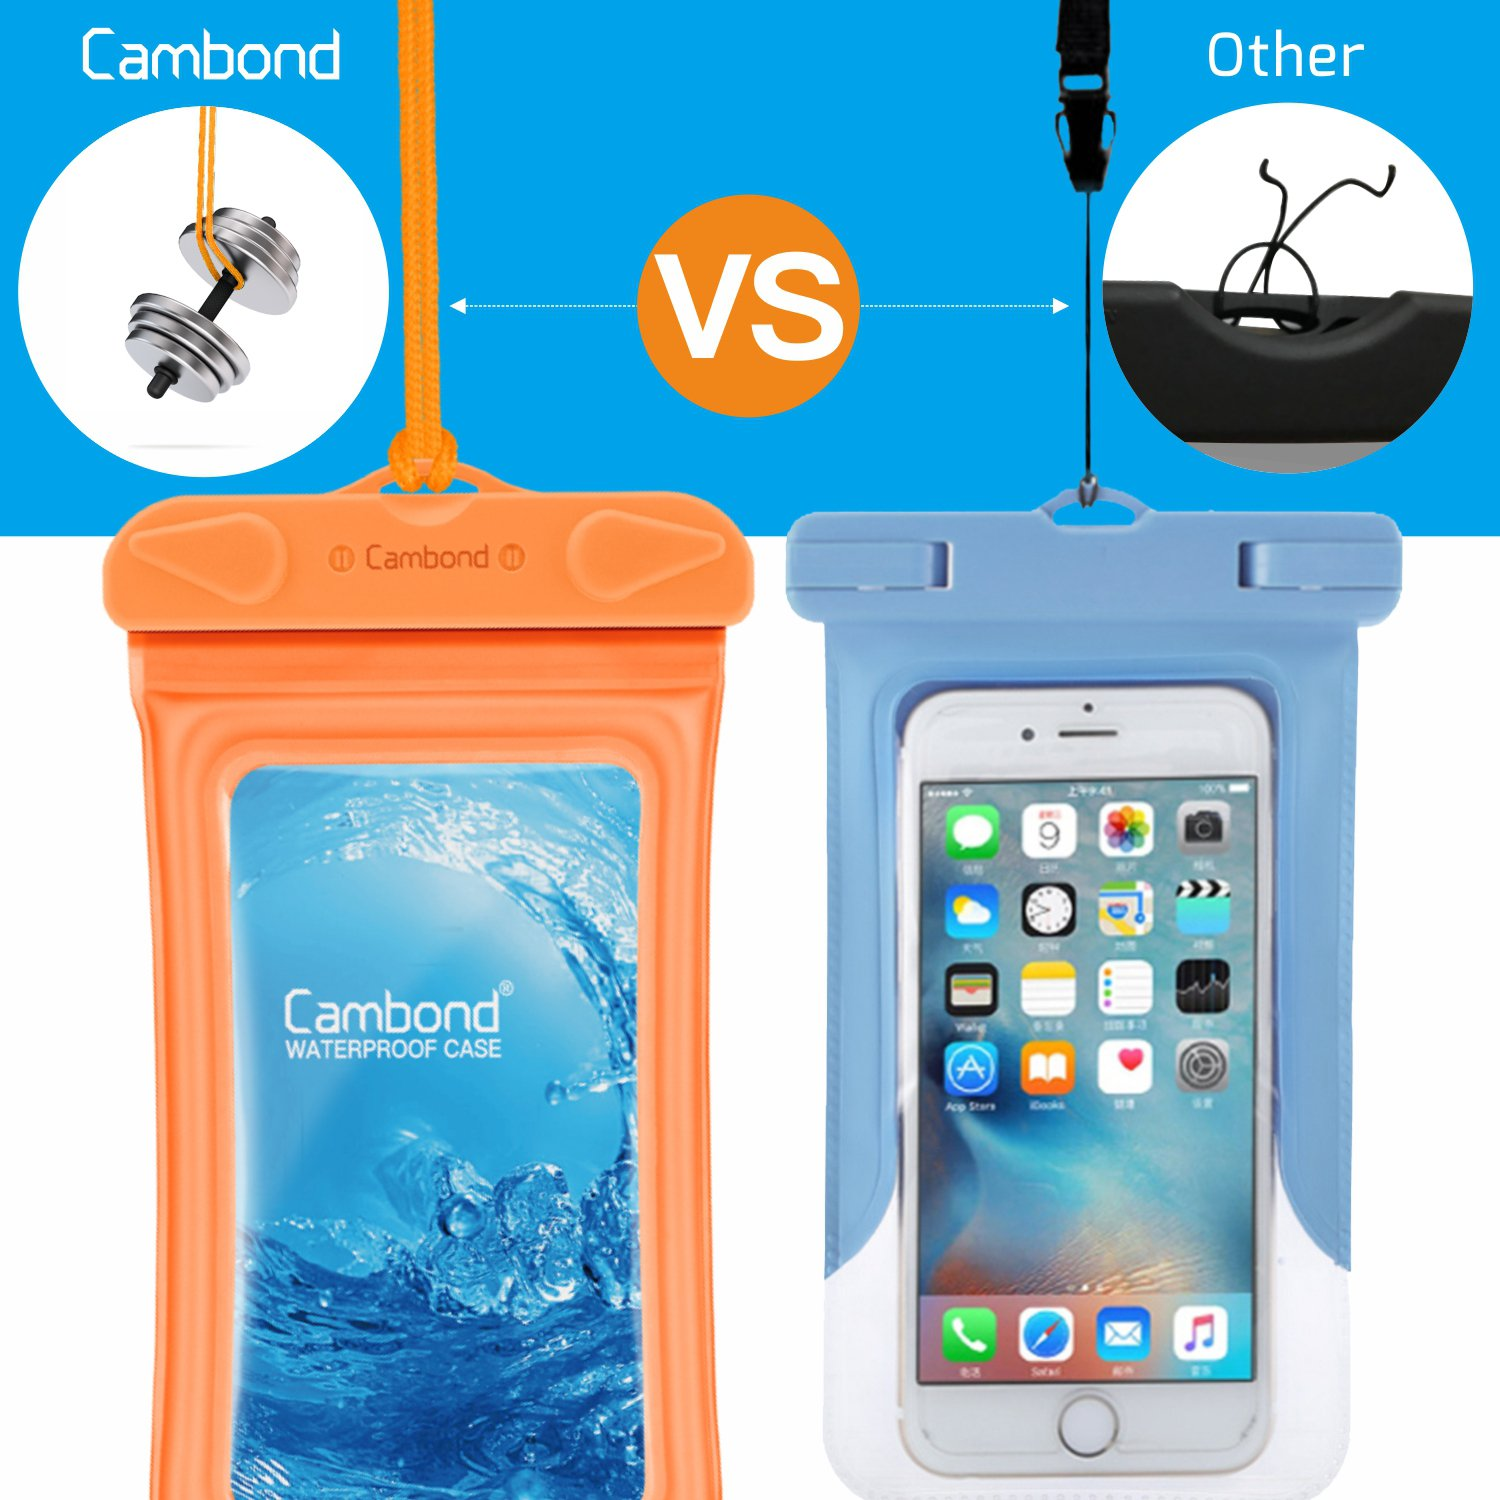 Cambond Waterproof Phone Pouch, Anti-break Lanyard, IPX8, Clear TPU, Fit for iPhone X/8/8P/7/7P, Samsung Galaxy S9/S8/S8P/Note 8, Google Pixel/HTC/LG, Up to 6.0'', Cruise Ship Kayak Accessories, 4 Pack by Cambond (Image #3)